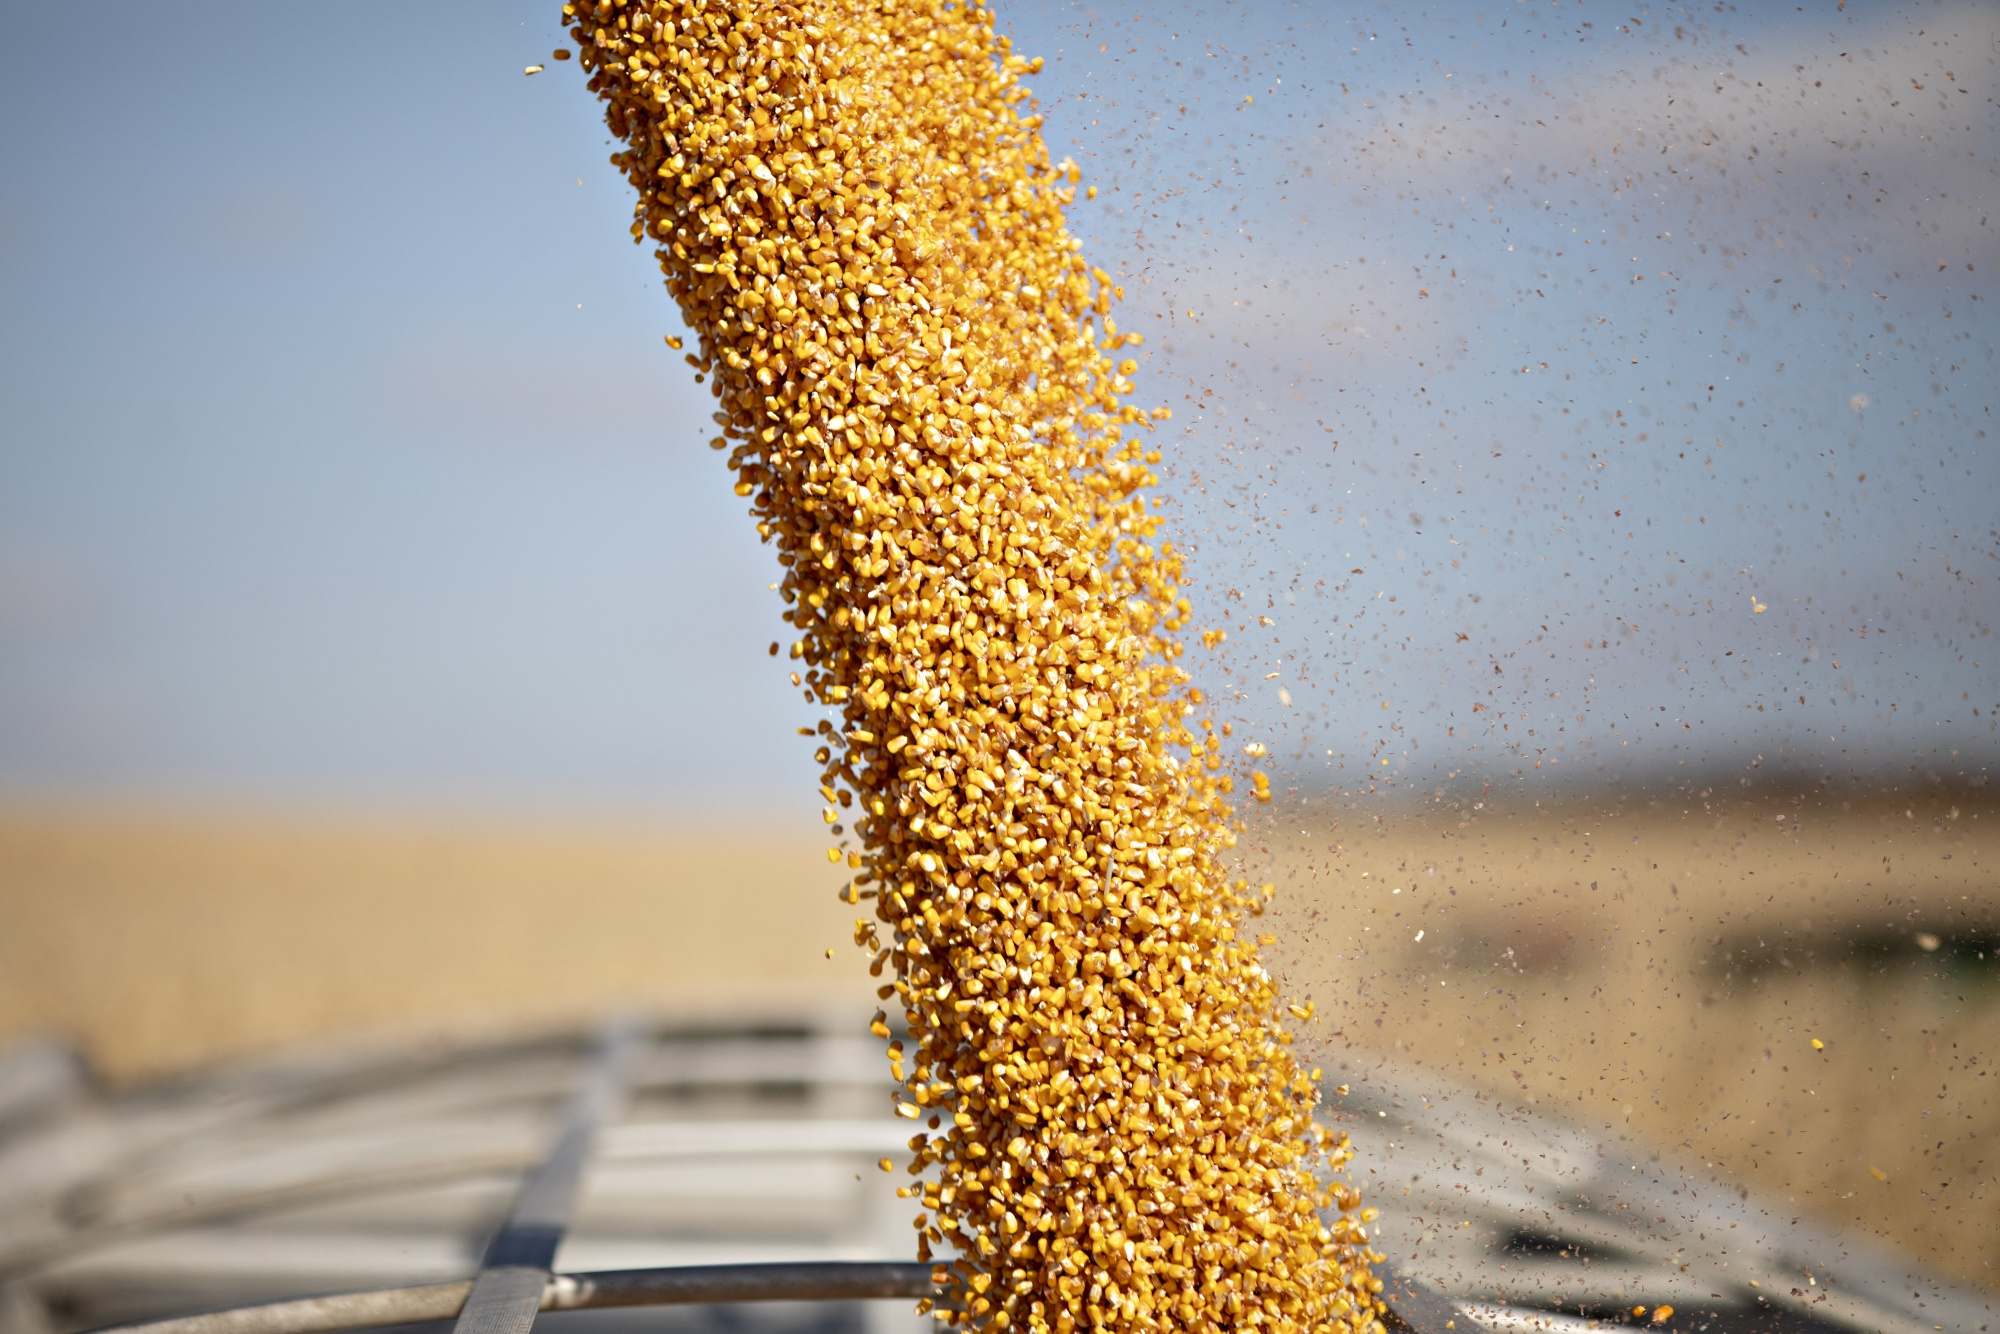 Corn is loaded into a semi-truck from a grain cart in Buda, Illinois.